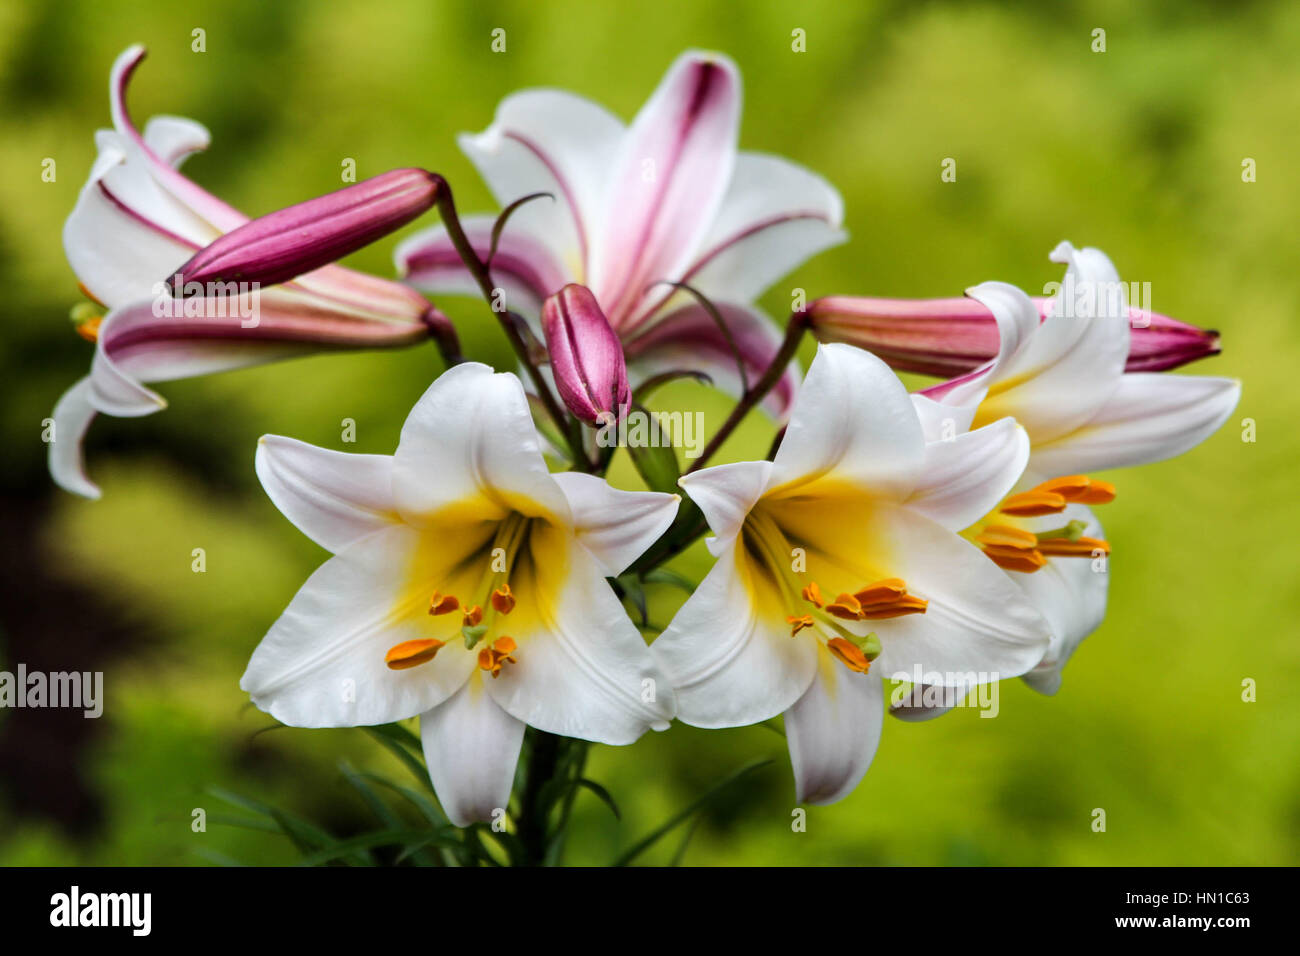 Beautiful white bright tropical lily flower stock photo 133411883 beautiful white bright tropical lily flower izmirmasajfo